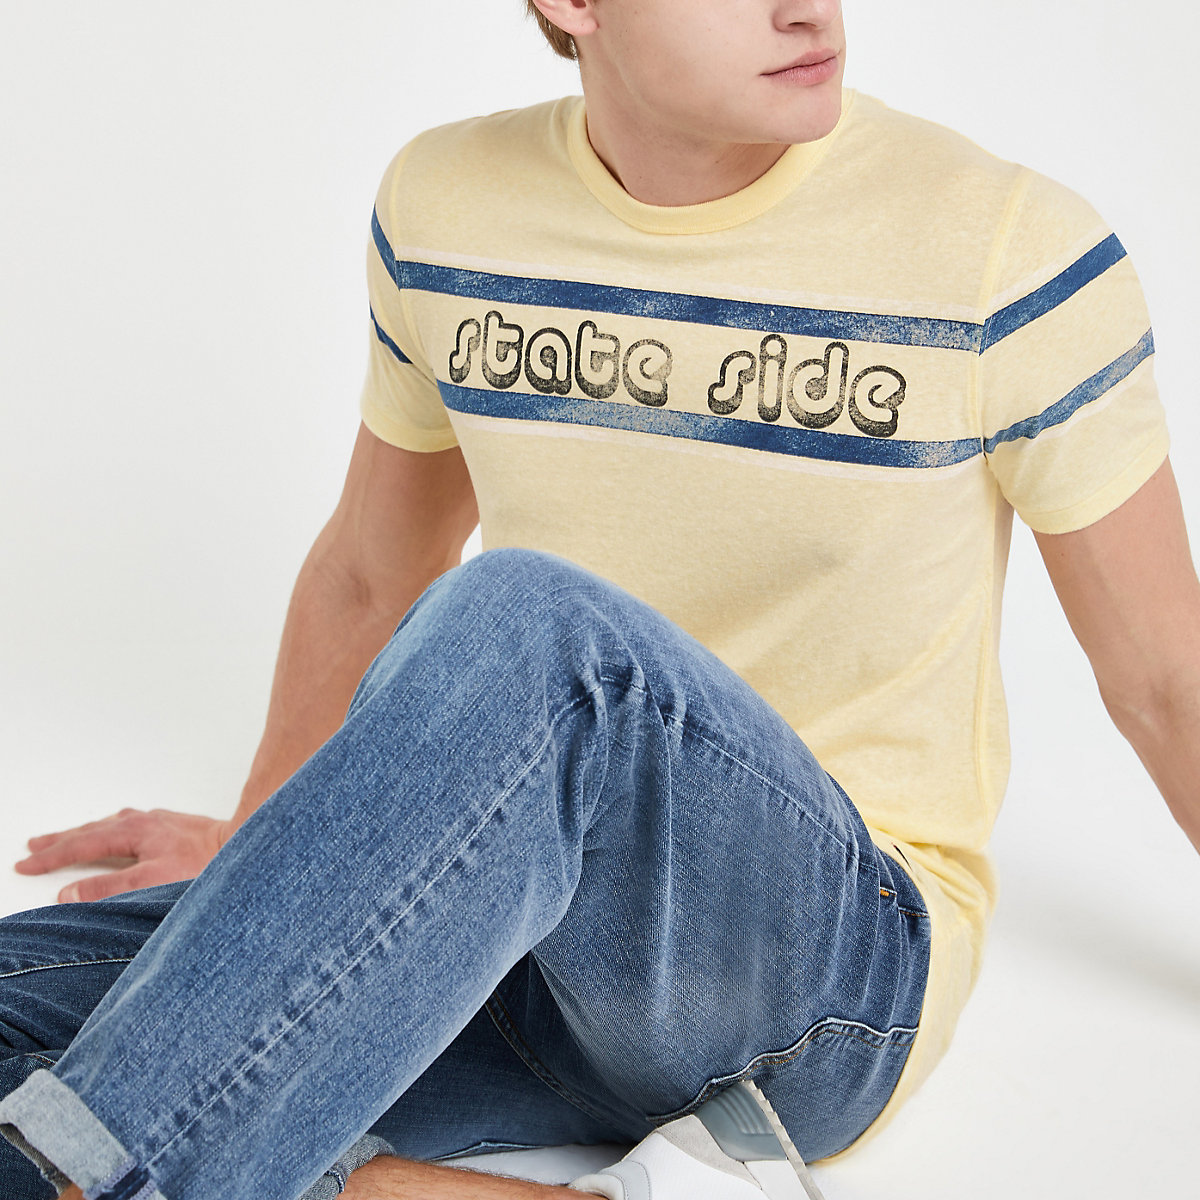 Jack and Jones yellow 'State side' T-shirt